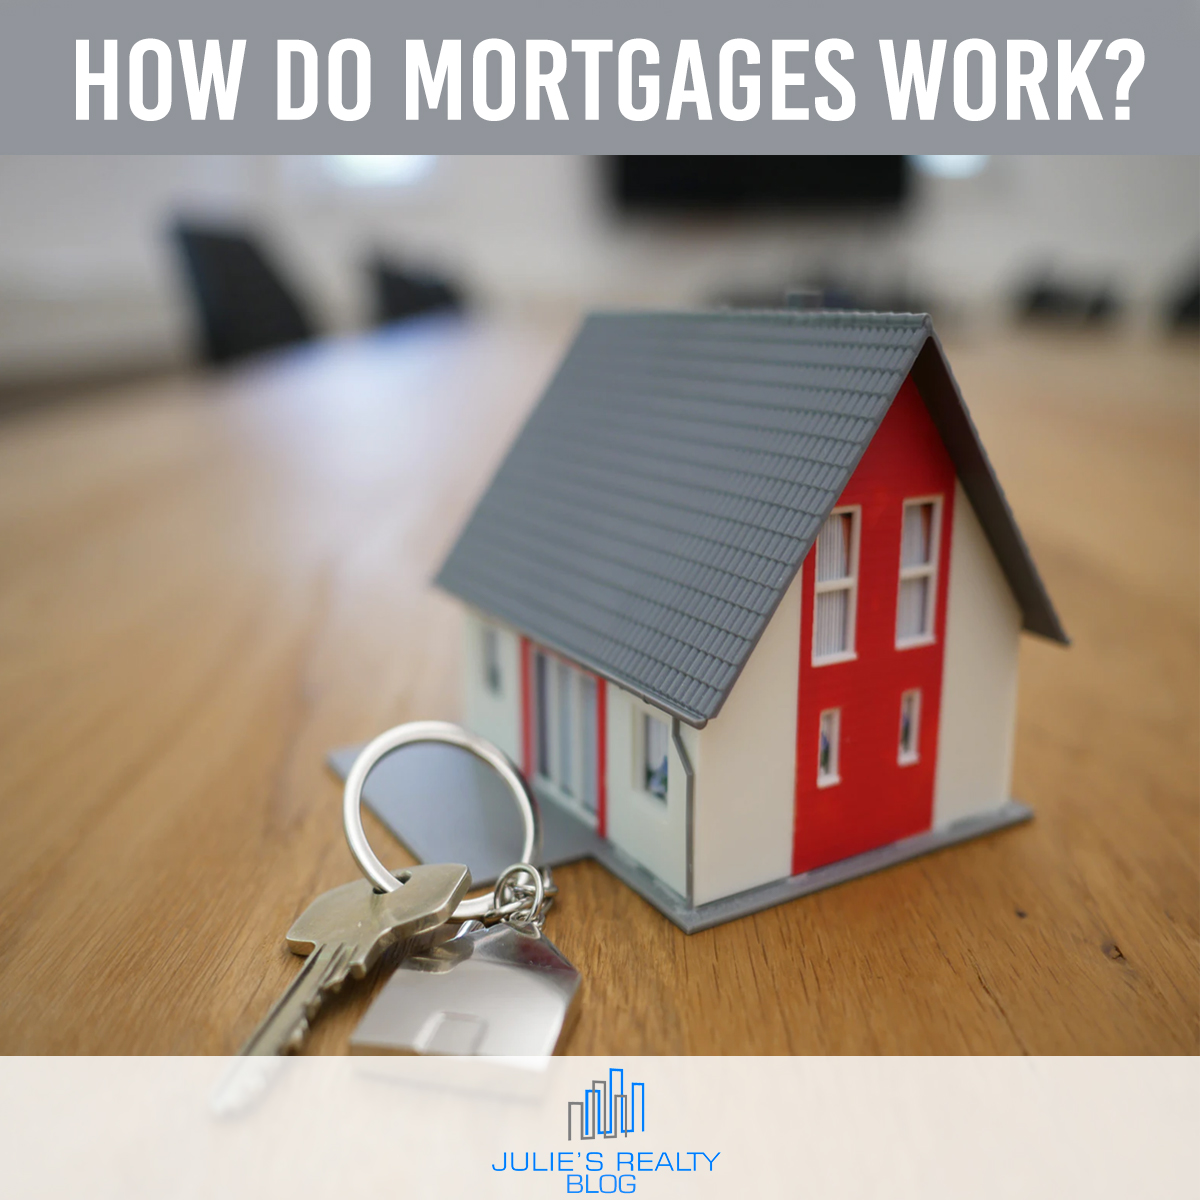 how do mortgages work.jpg